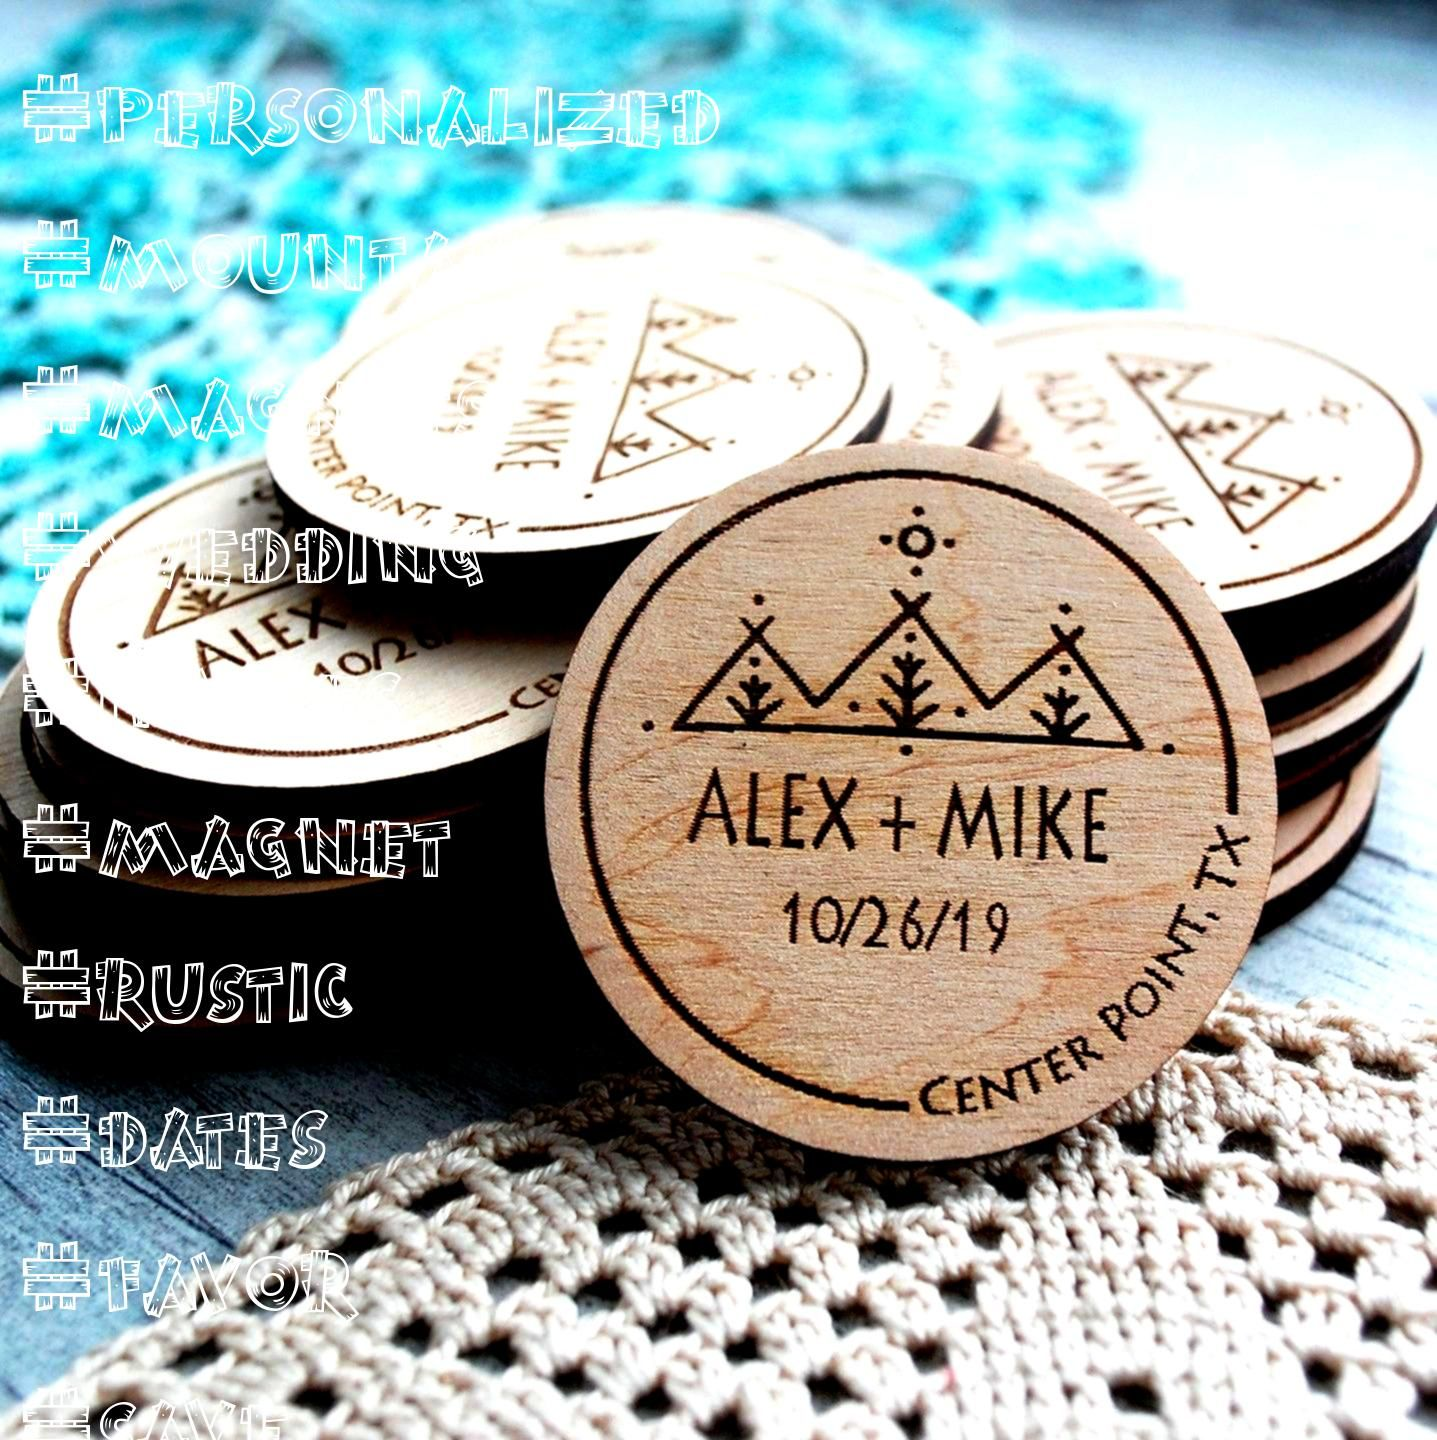 save the date magnets Boho wedding invites Wood save the dates Personalized wedding magnet set Rustic Wedding favor Mountain save the date magnets Boho wedding invites Wo...